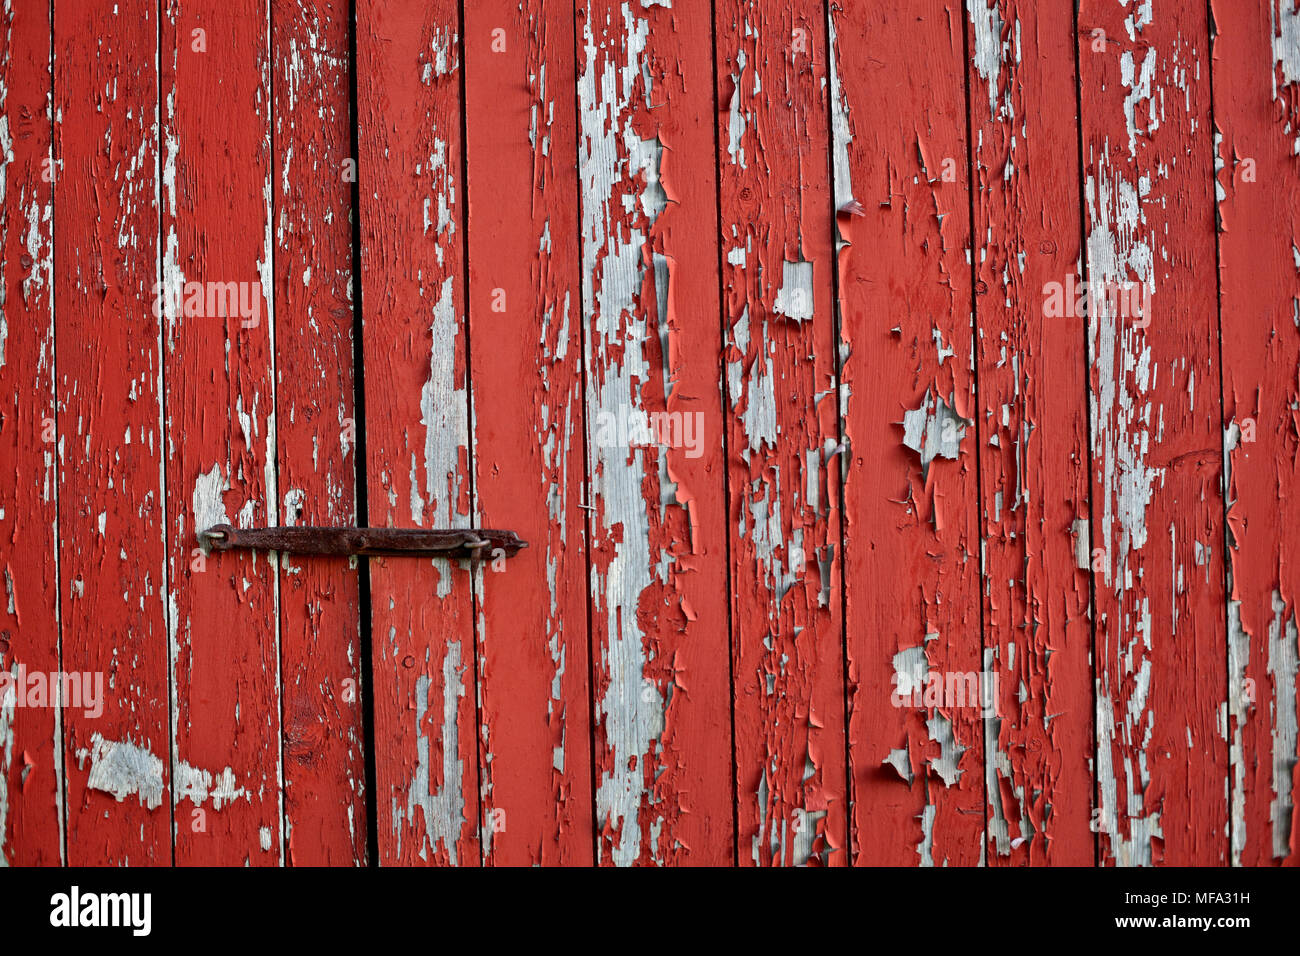 The Life Of An Antique Red Barn Door With Peeling Paint And Old